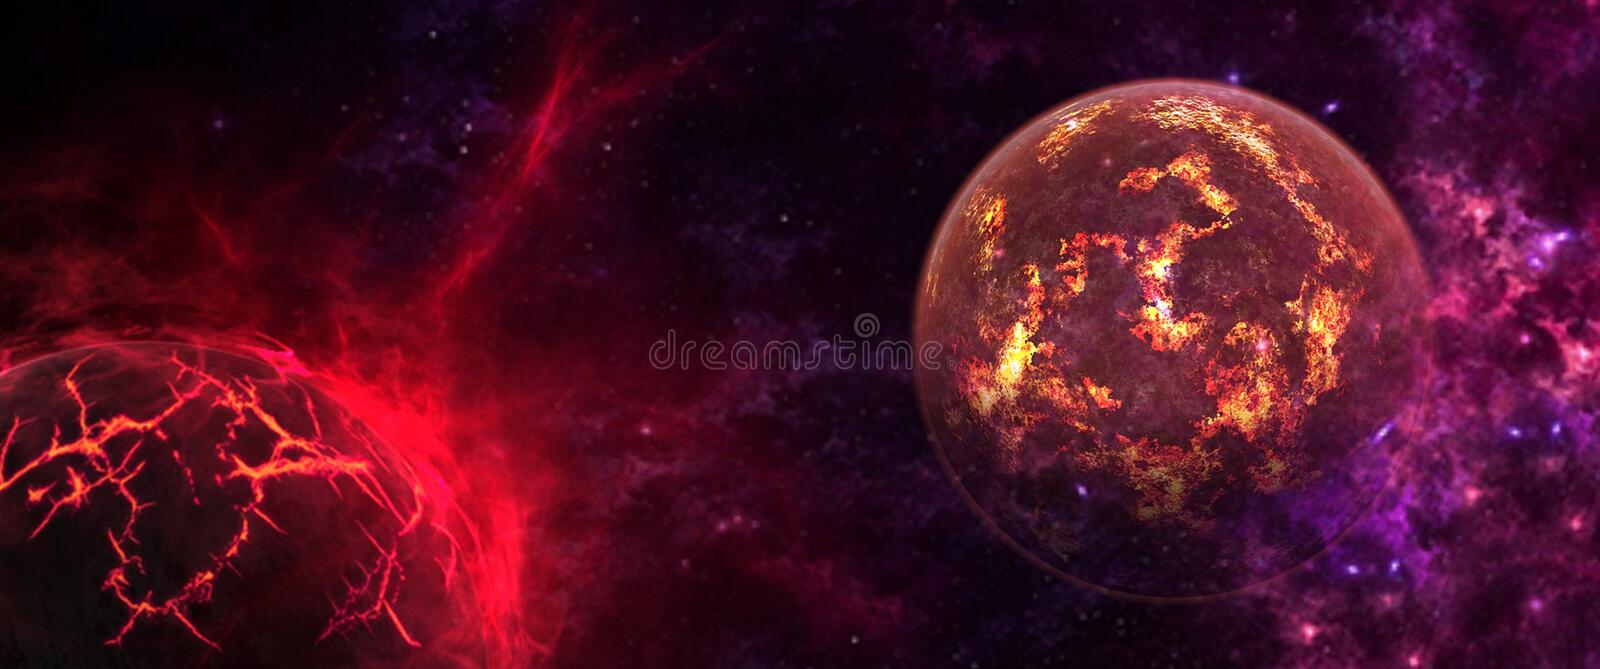 Planets and galaxies, science fiction wallpaper. Beauty of deep space. Billions of galaxies in the universe Cosmic art background stock illustration